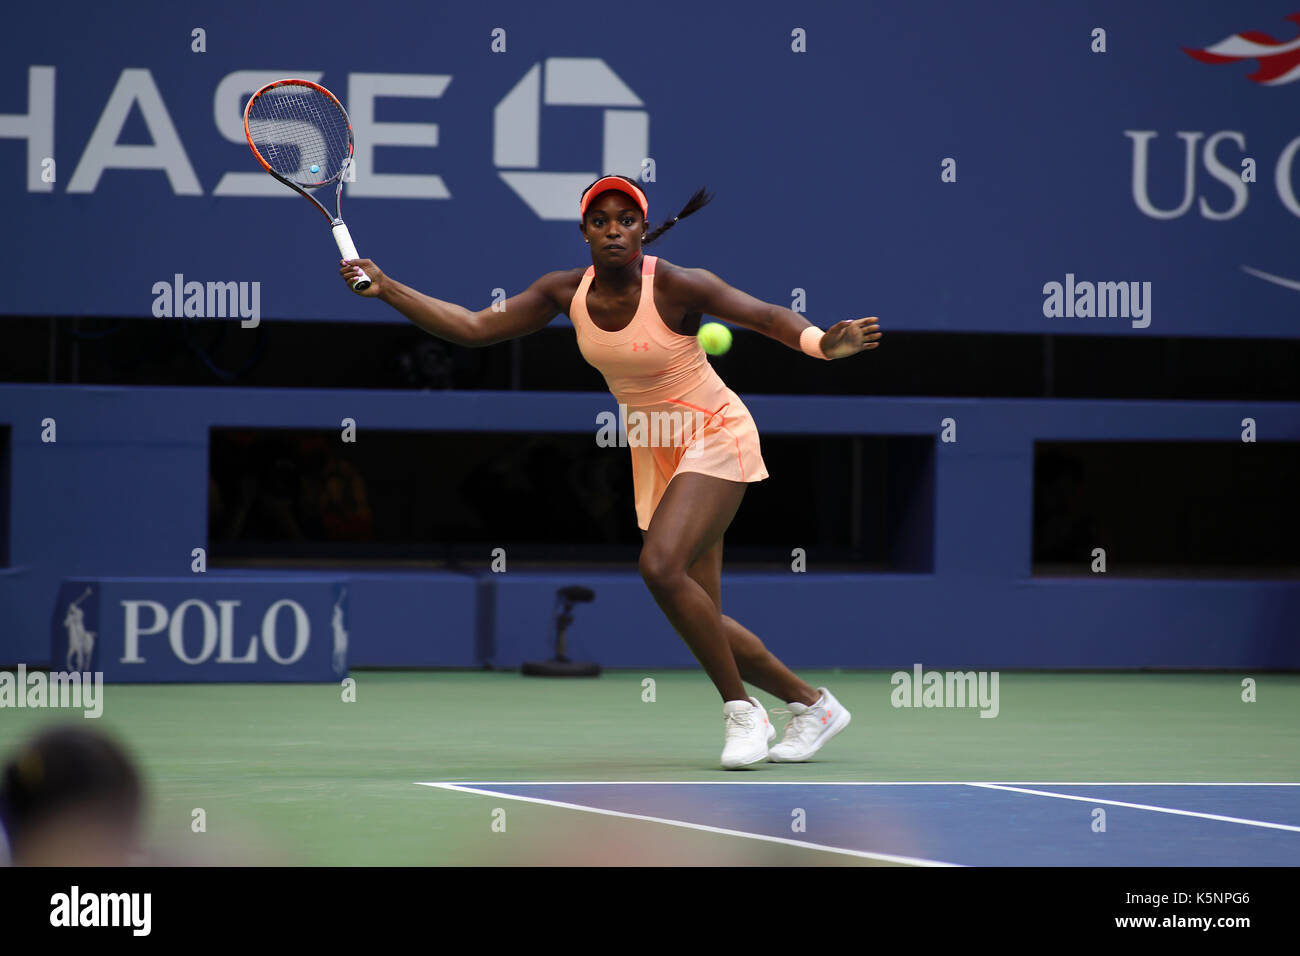 Sloane Stephens Forehand High Resolution Stock Photography And Images Alamy